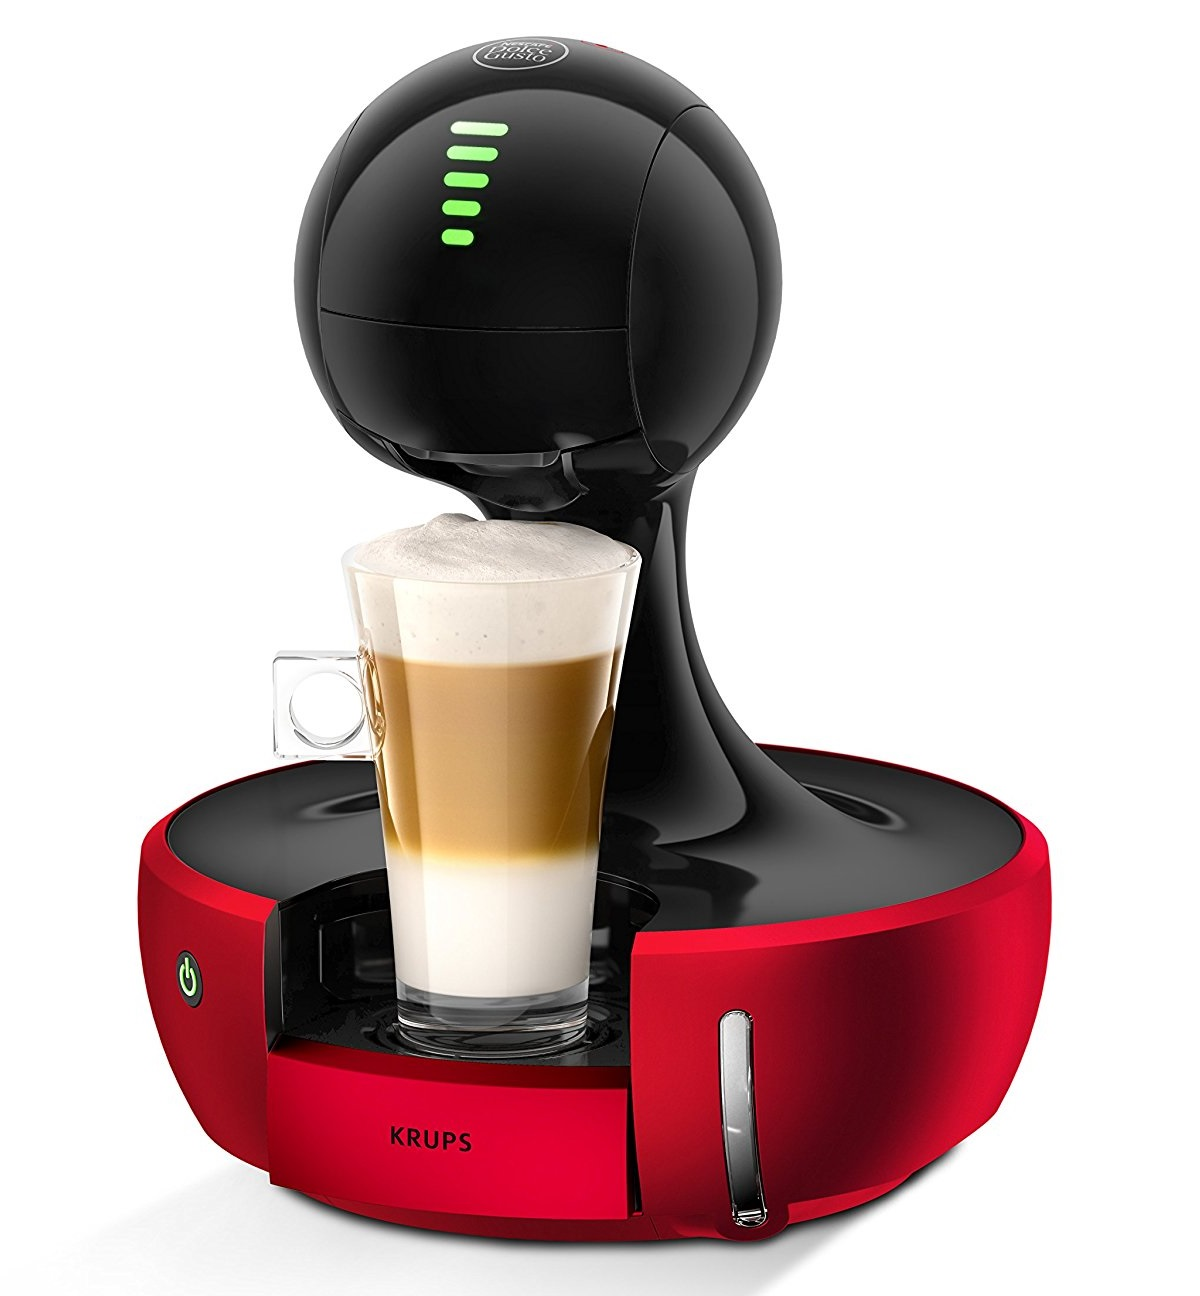 les meilleures machines caf krups dolce gusto comparatif en oct 2018. Black Bedroom Furniture Sets. Home Design Ideas